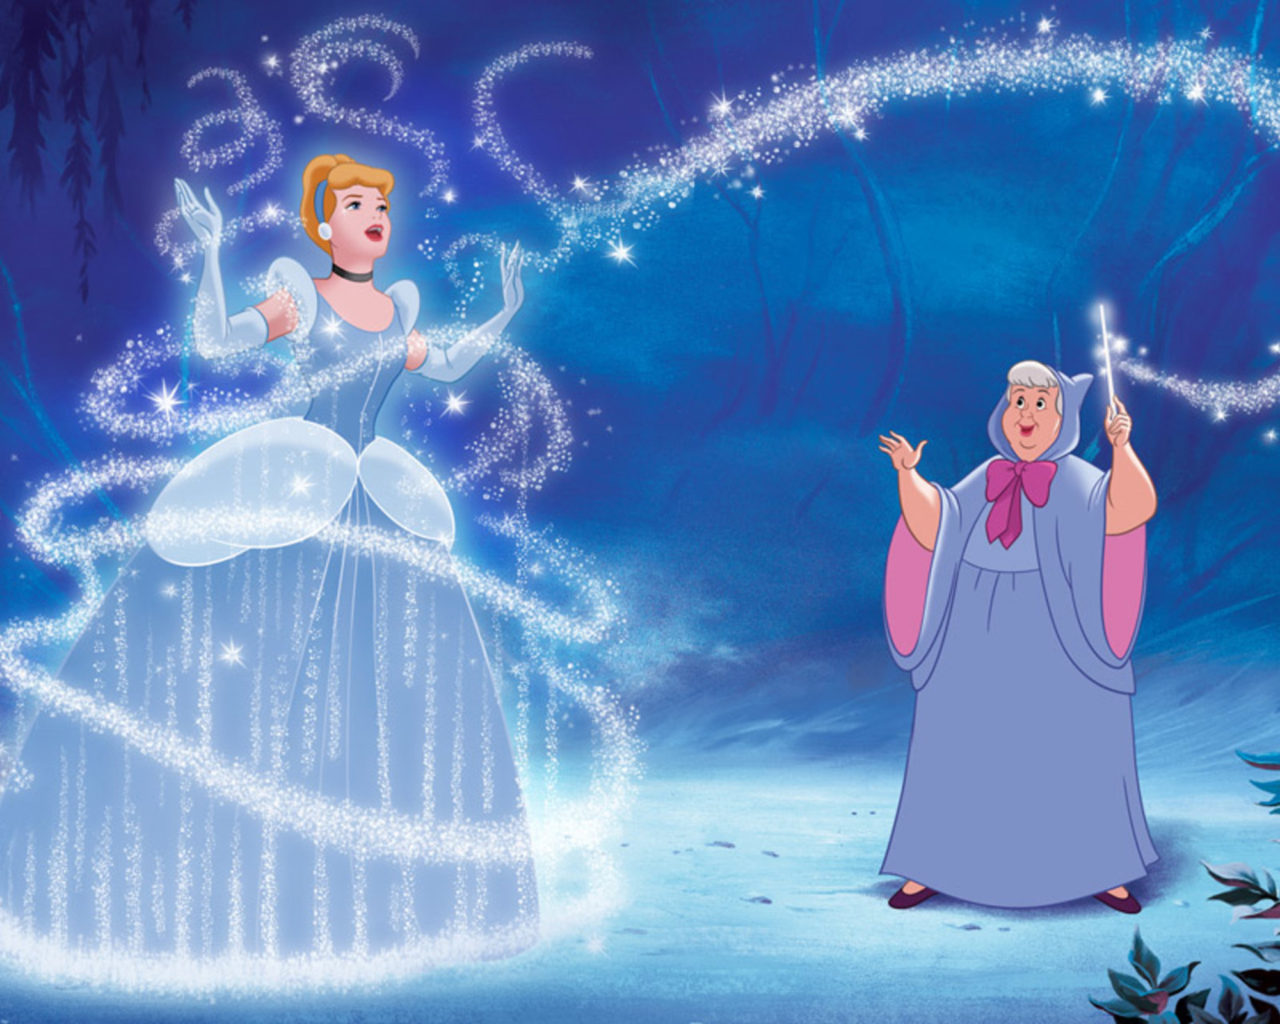 Disney Cars Wallpapers Free A Cinderella Story Fairy Godmother Uses Magic Cinderella